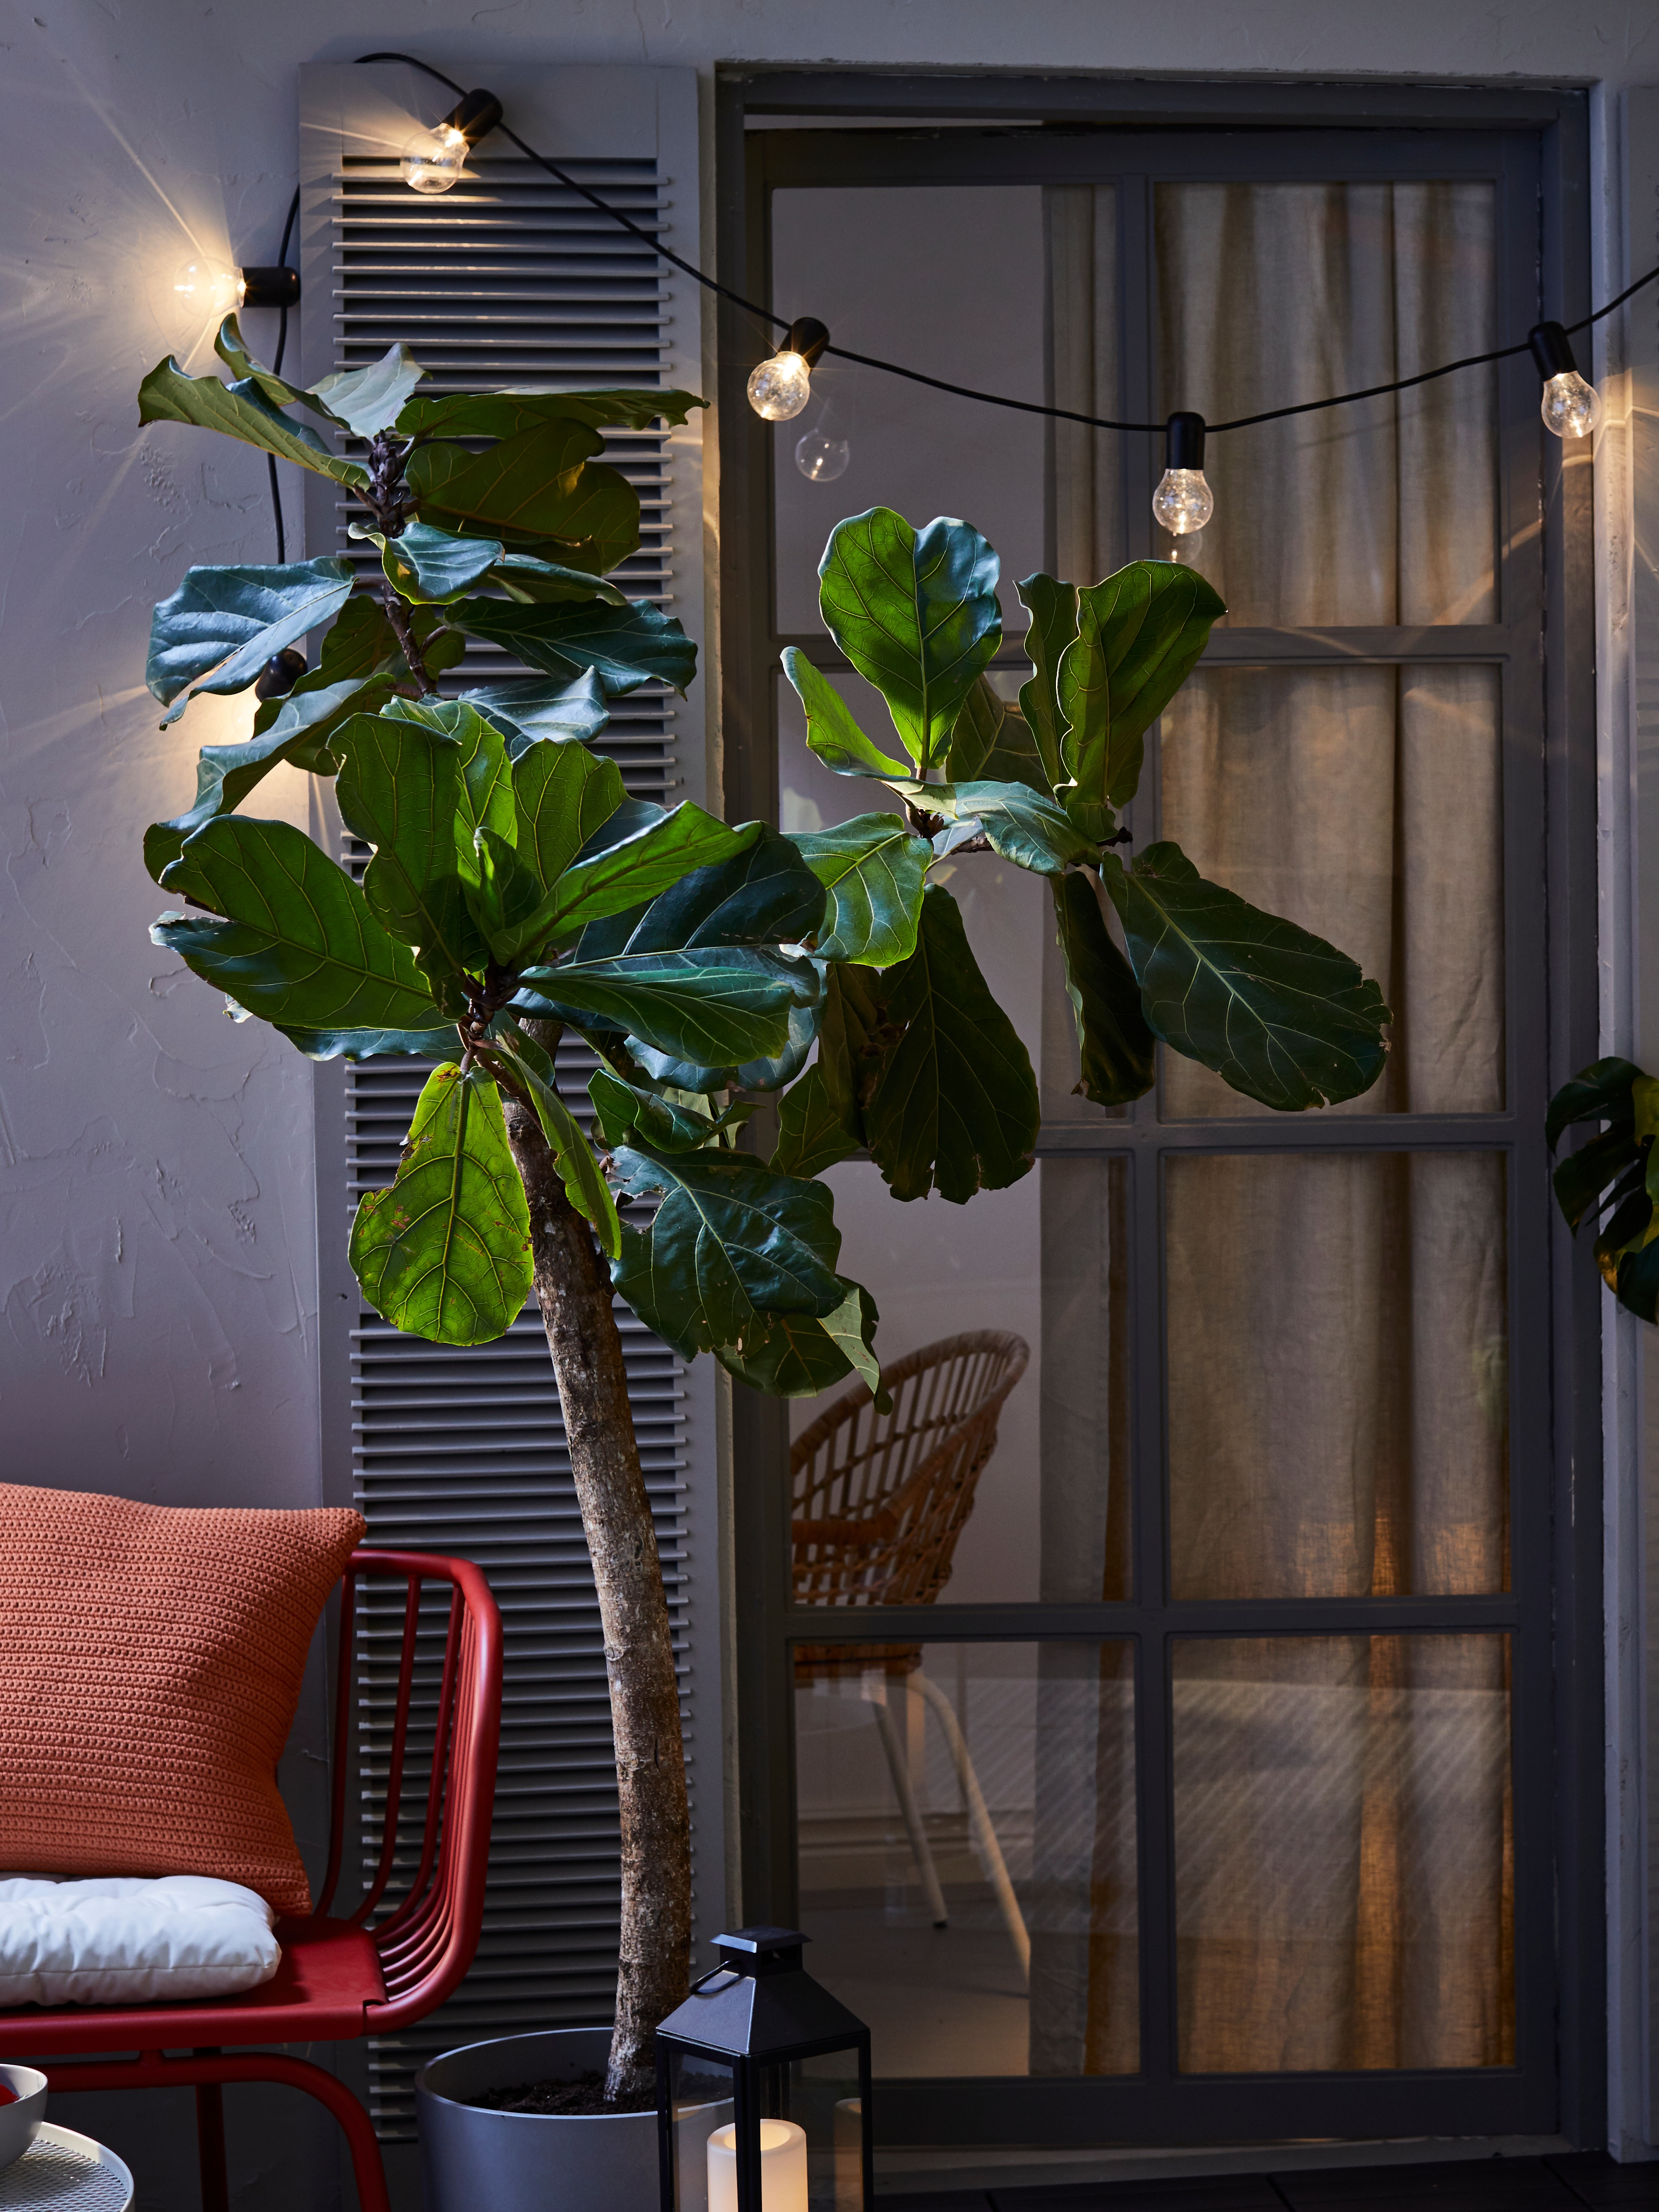 Night-time exterior of balcony door with shutters, various plants, lighting chain and LED lamp.